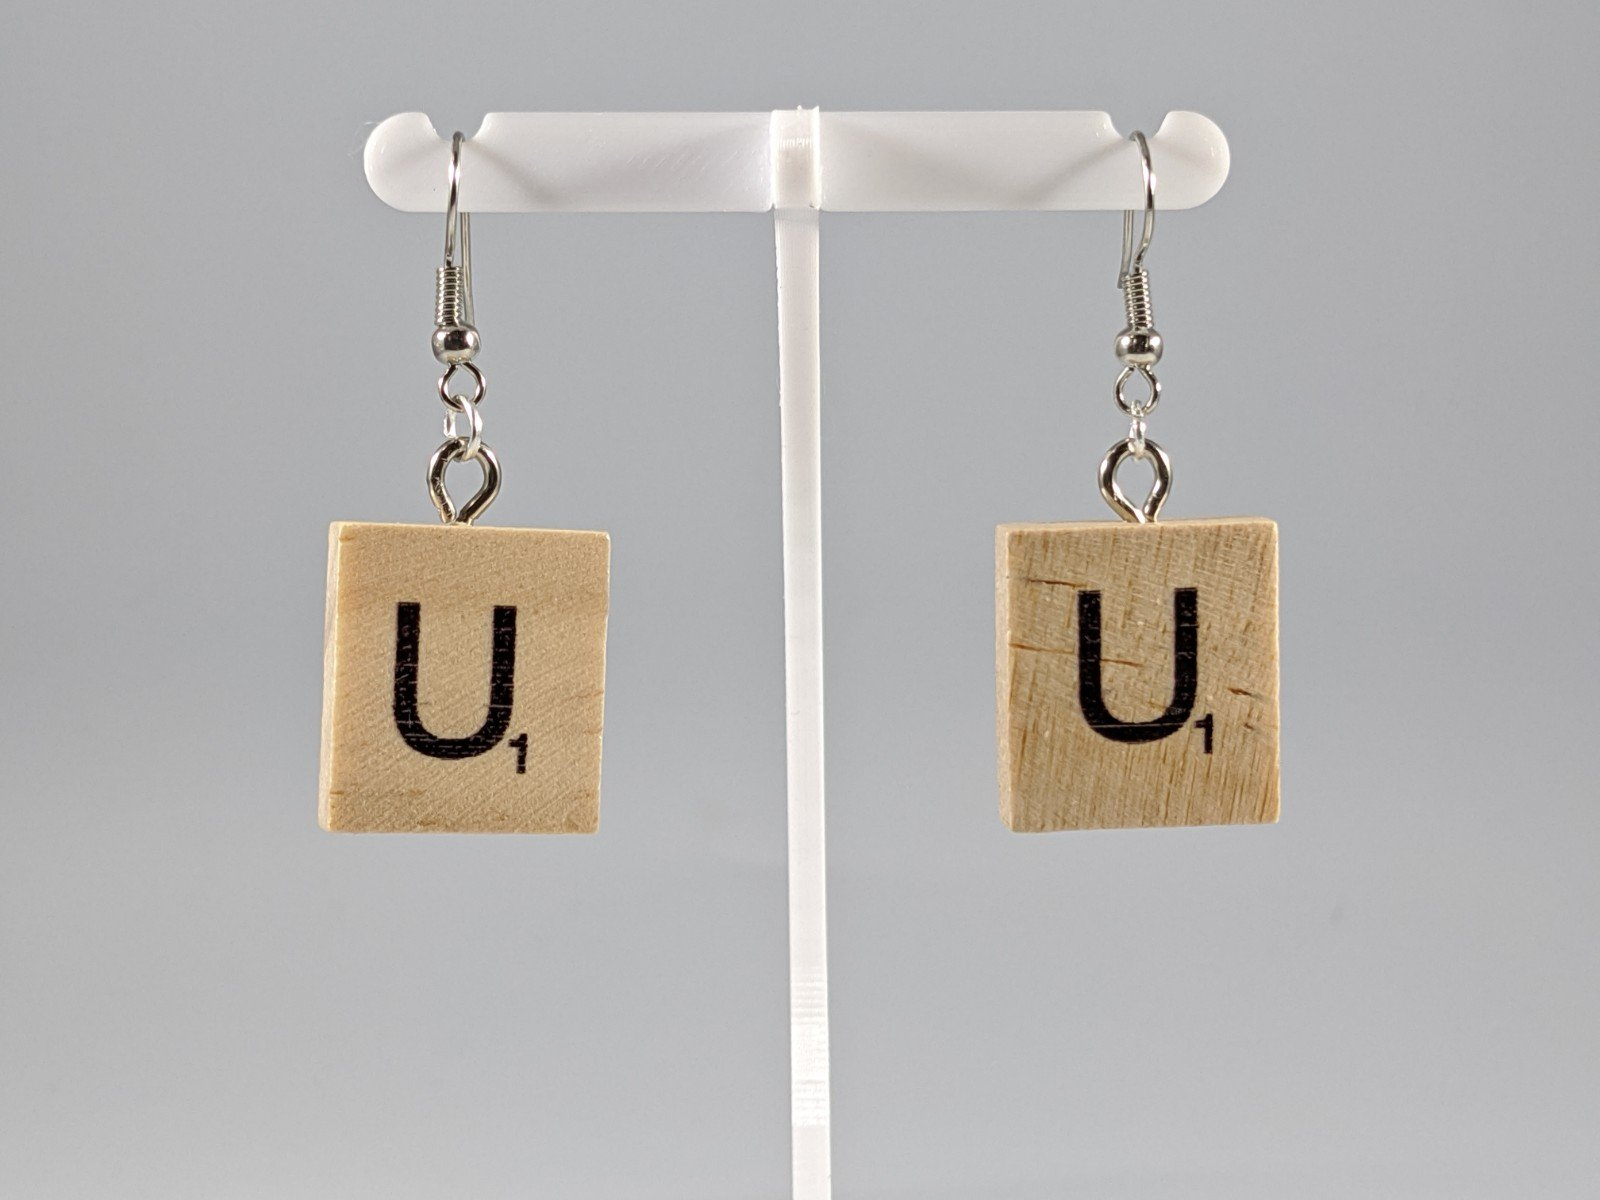 Scrabble Earring: Light Natural - U